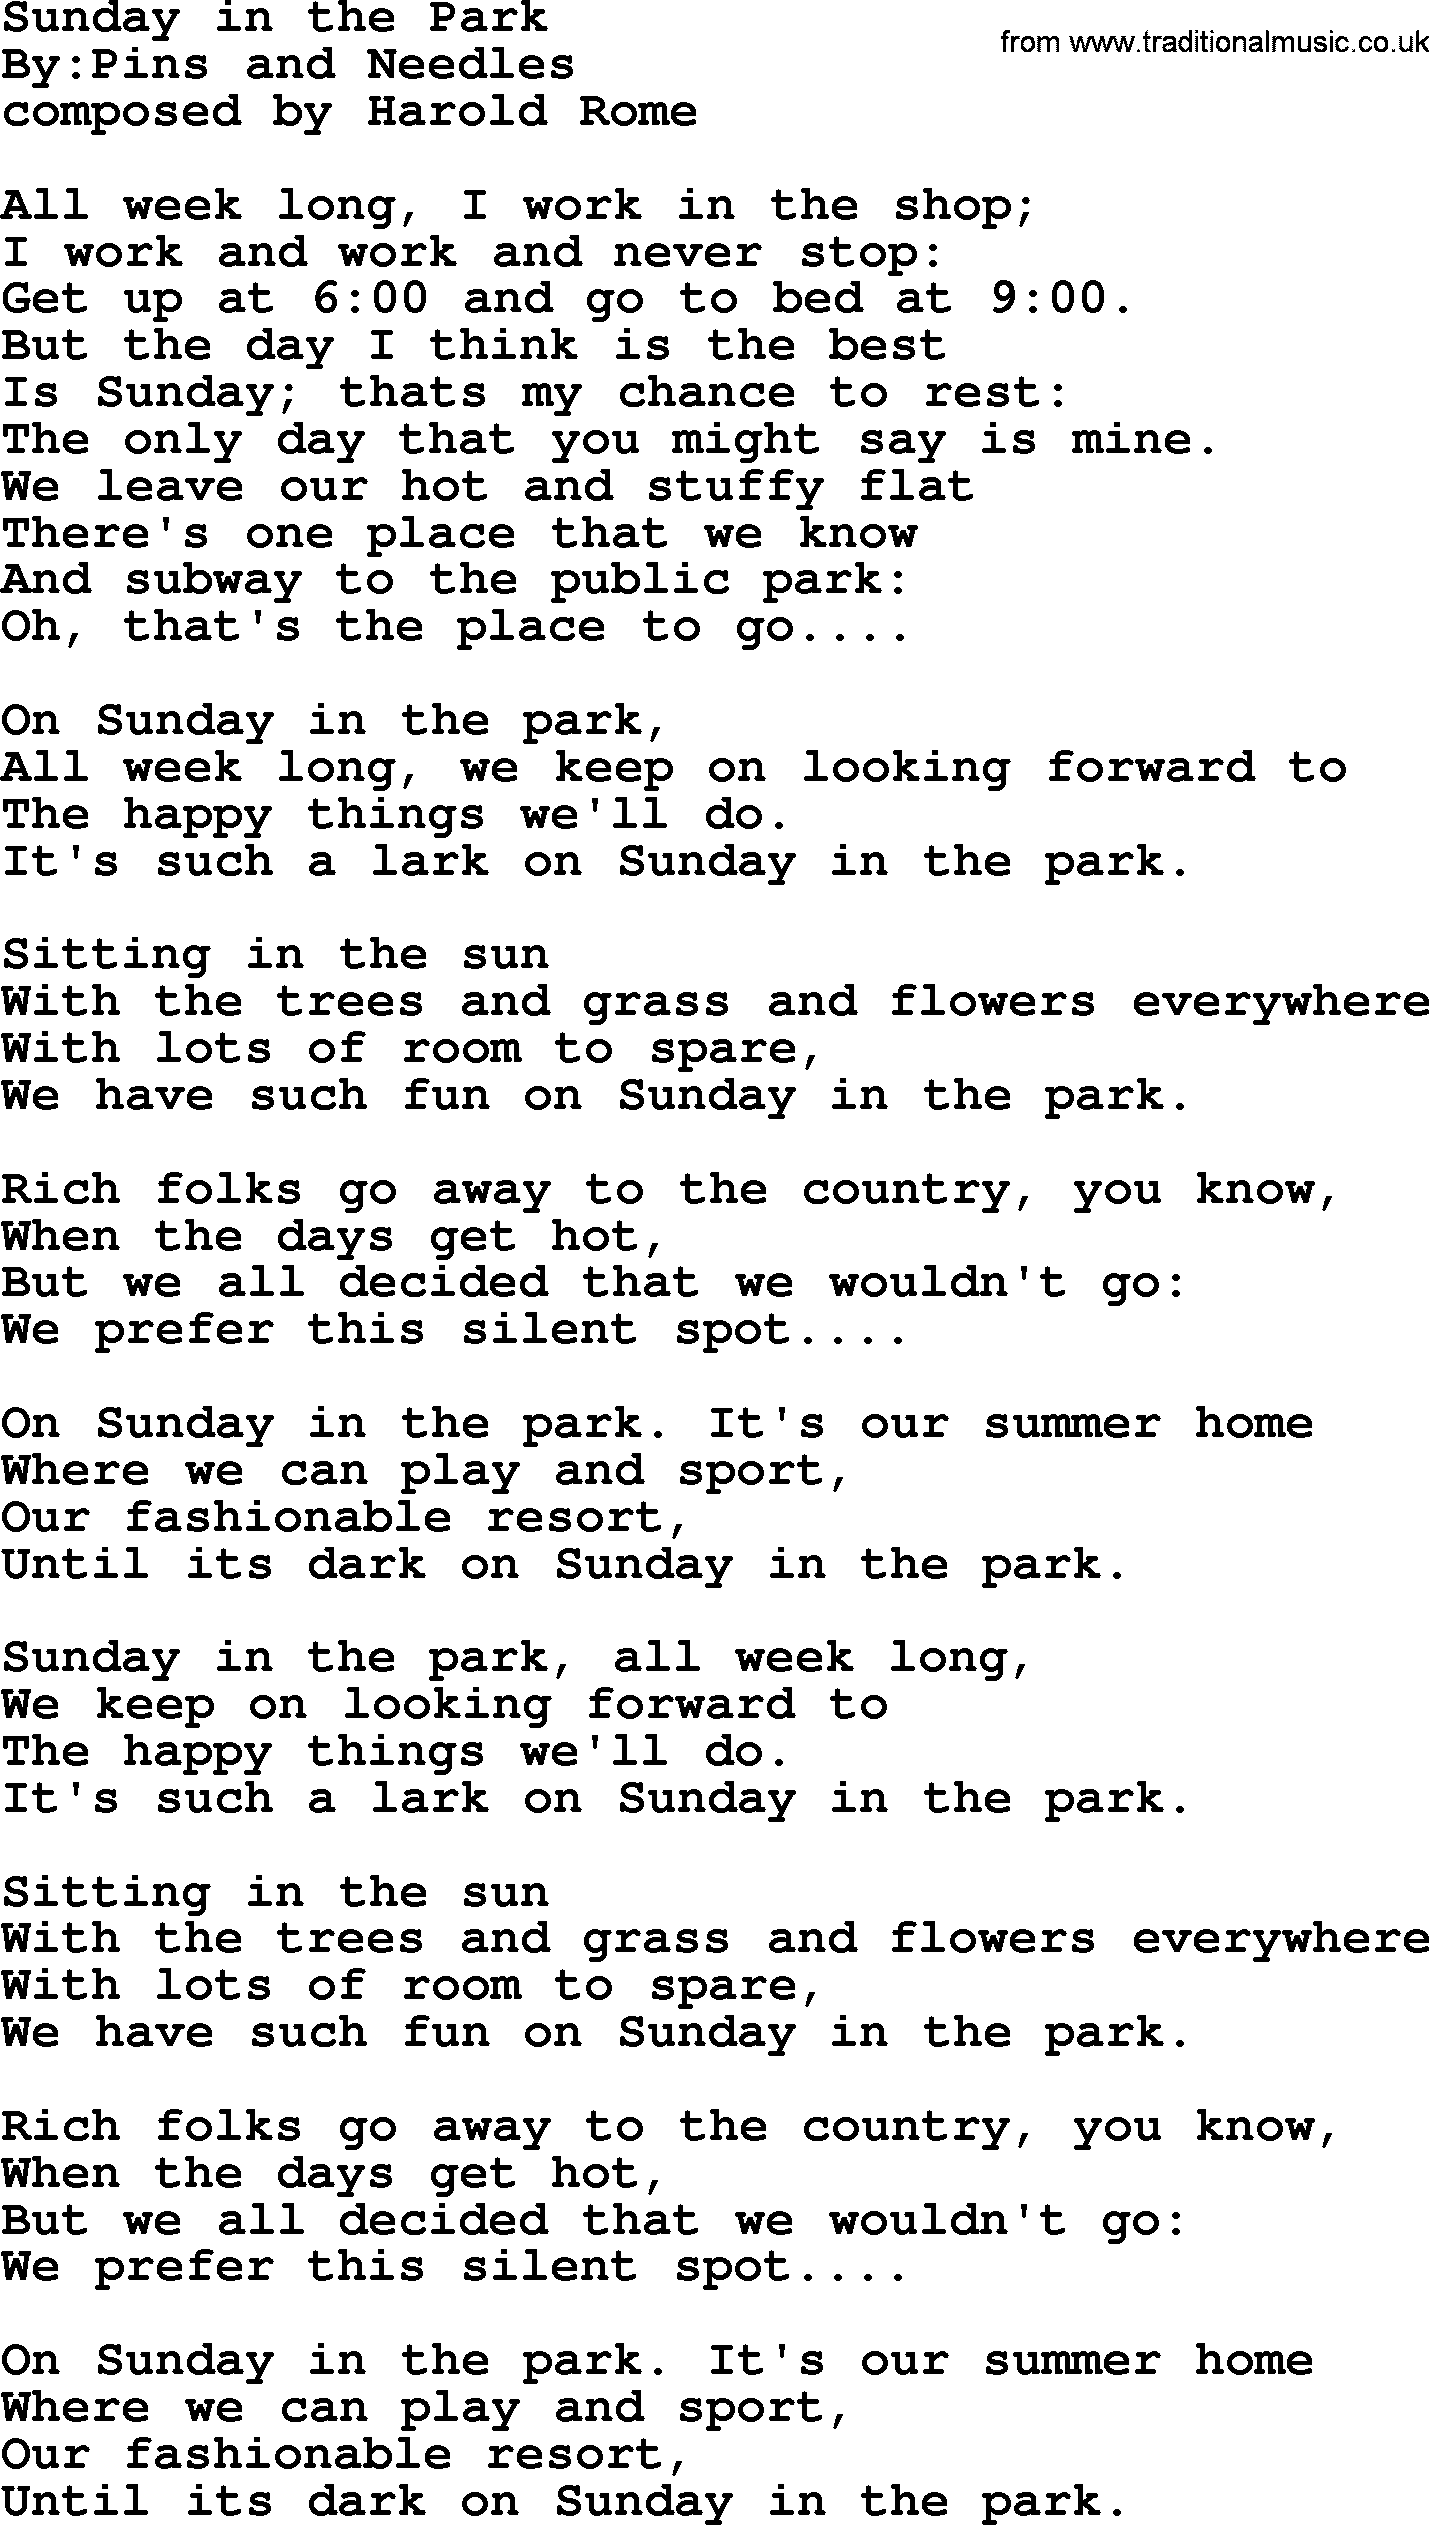 Sunday In The Park Political Solidarity Workers Or Union Song Lyrics